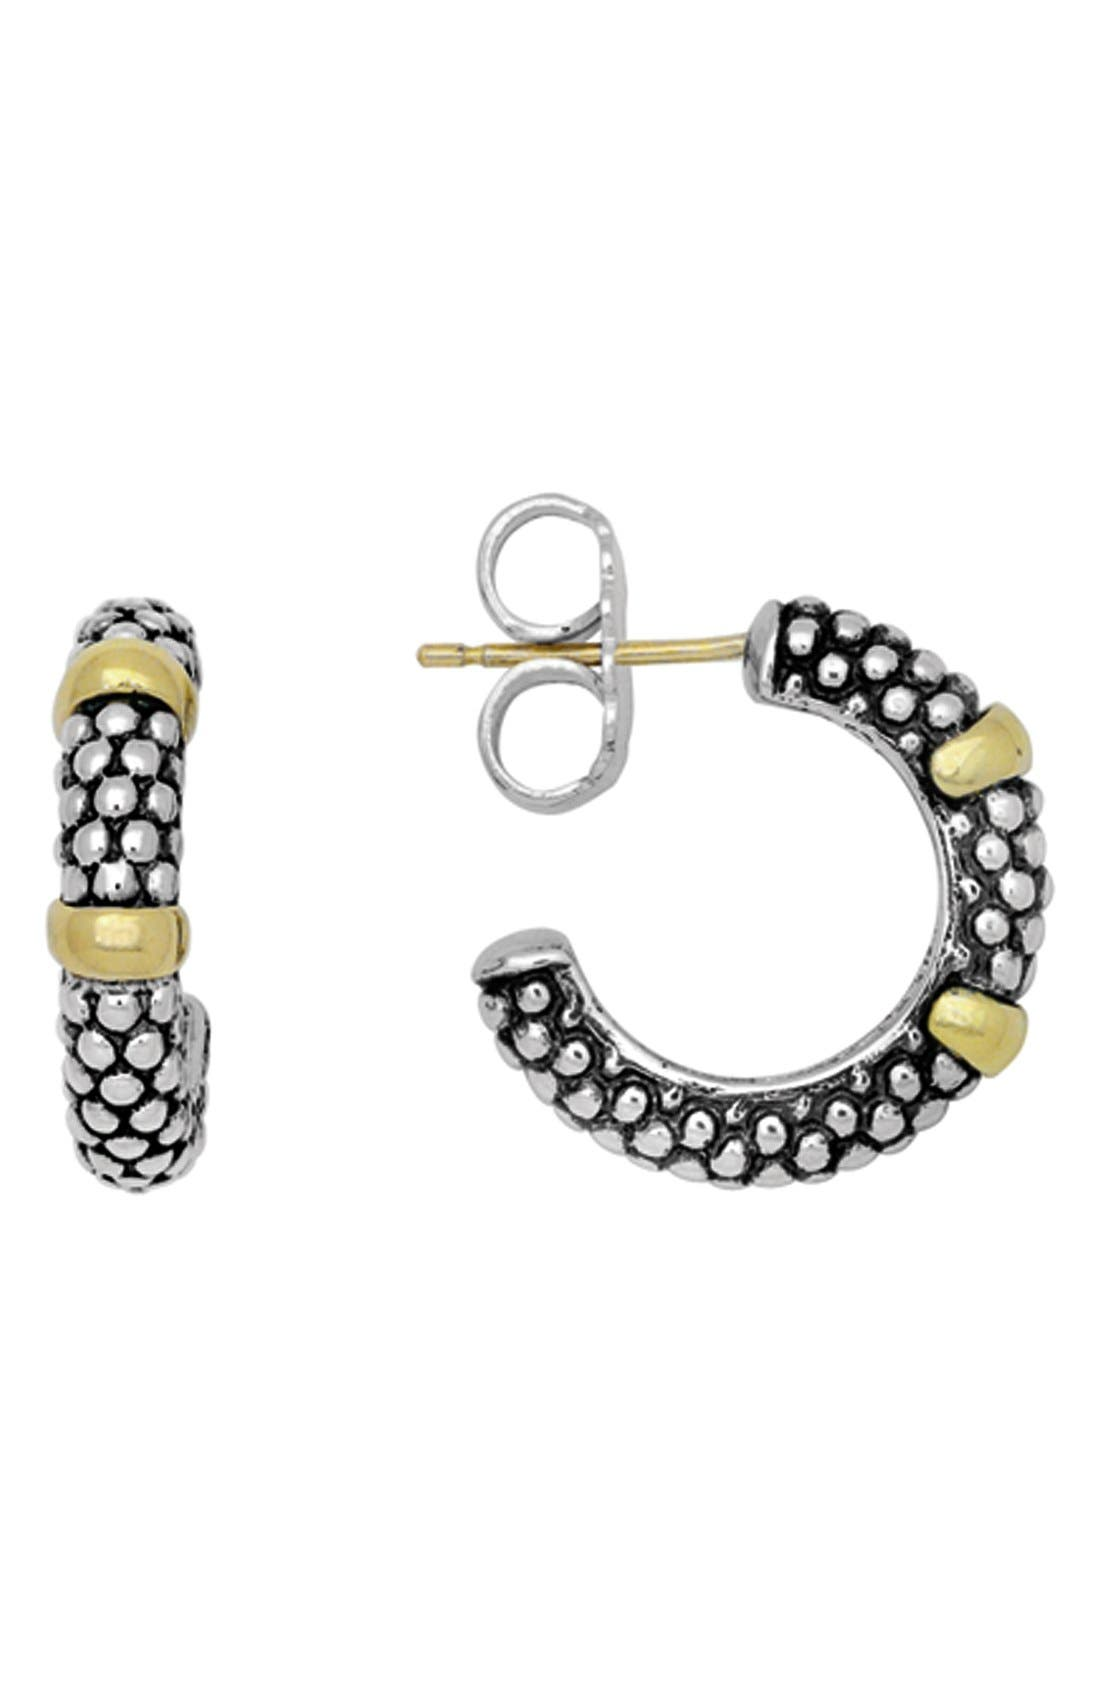 Two Tone Caviar Hoop Earrings,                         Main,                         color, Sterling Silver/ Gold